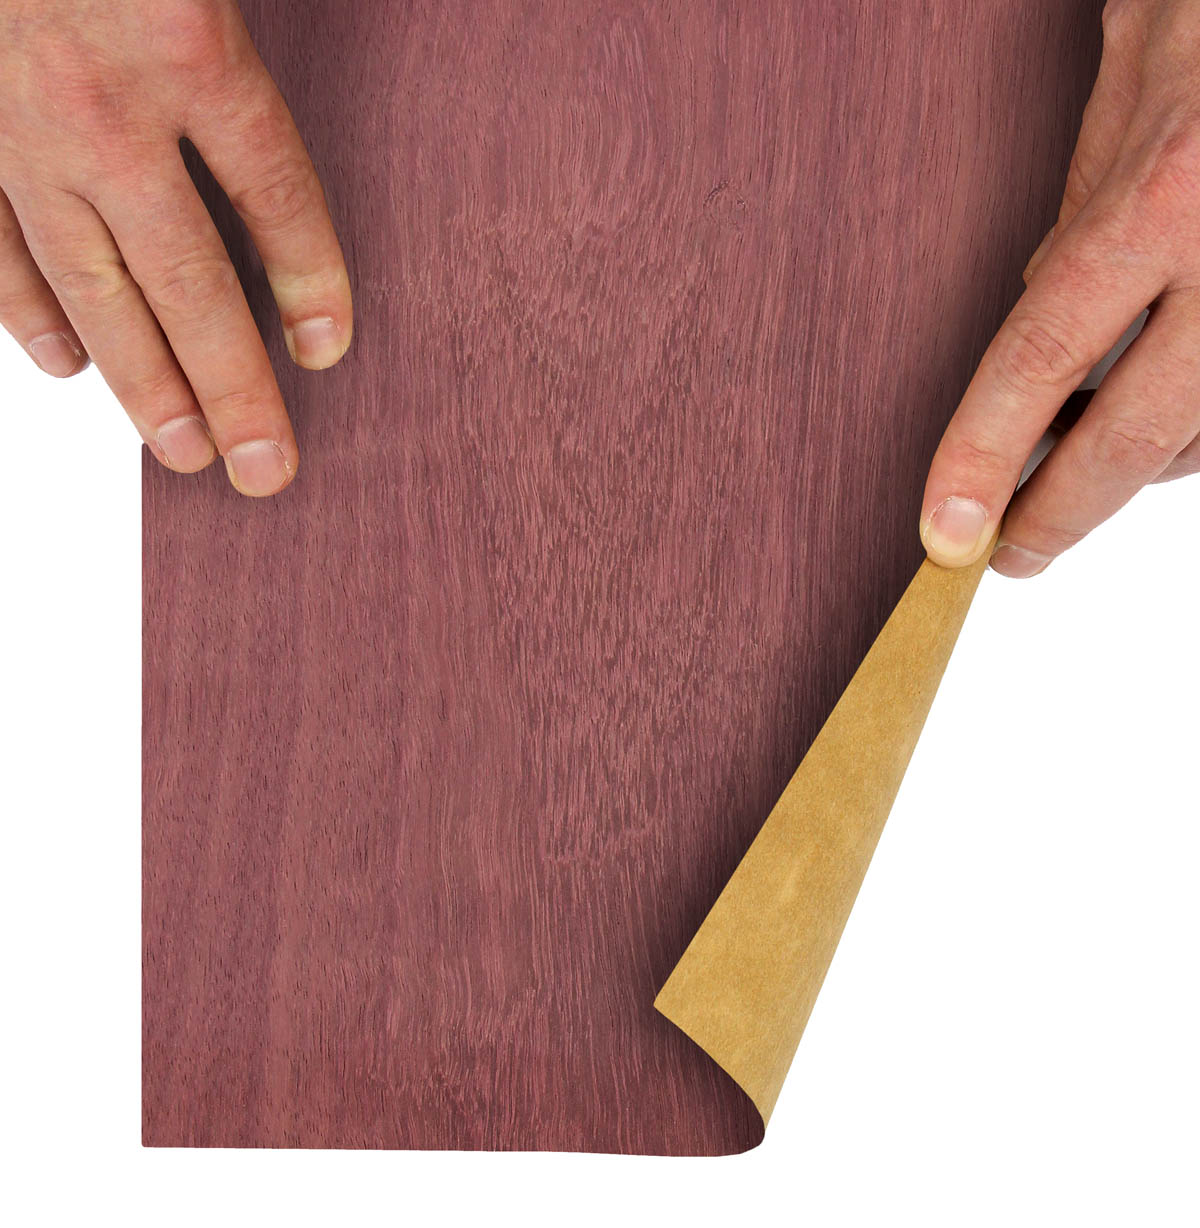 Purple Heart Lumber for Woodworkers - Friendly Service